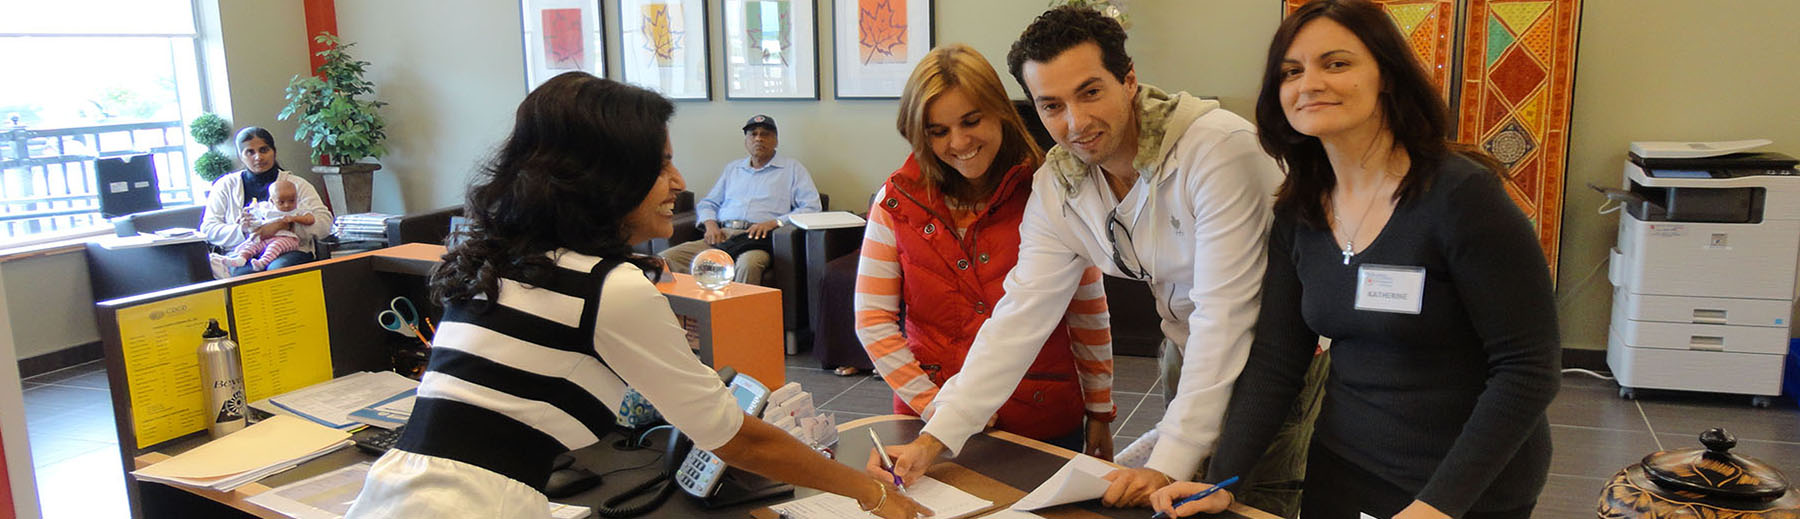 Newcomers register at the reception desk at the Ajax Welcome Centre